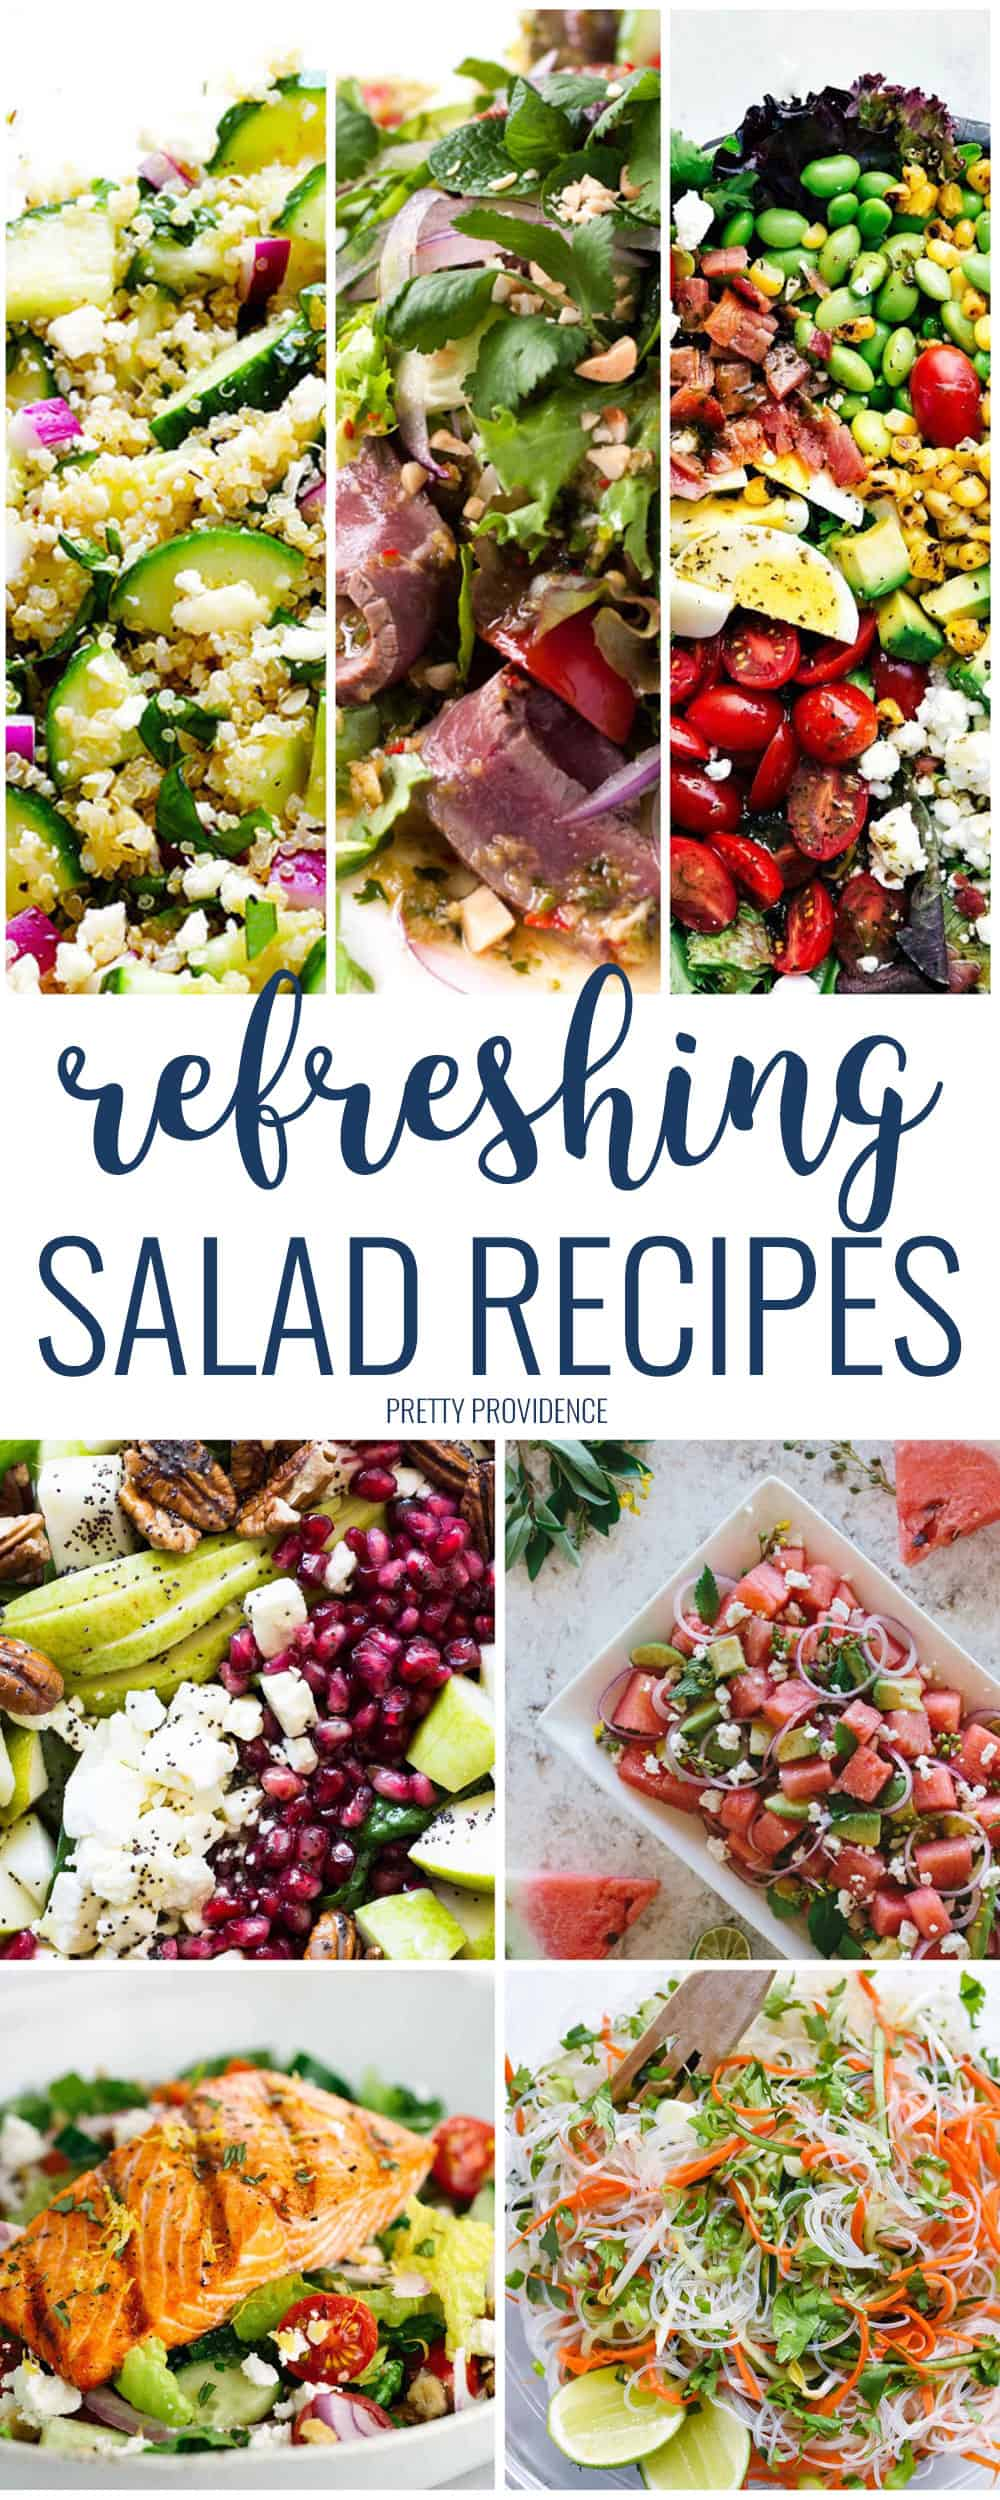 Okay there are so many good salad recipes here! I love trying new and unique salad recipes for dinner!